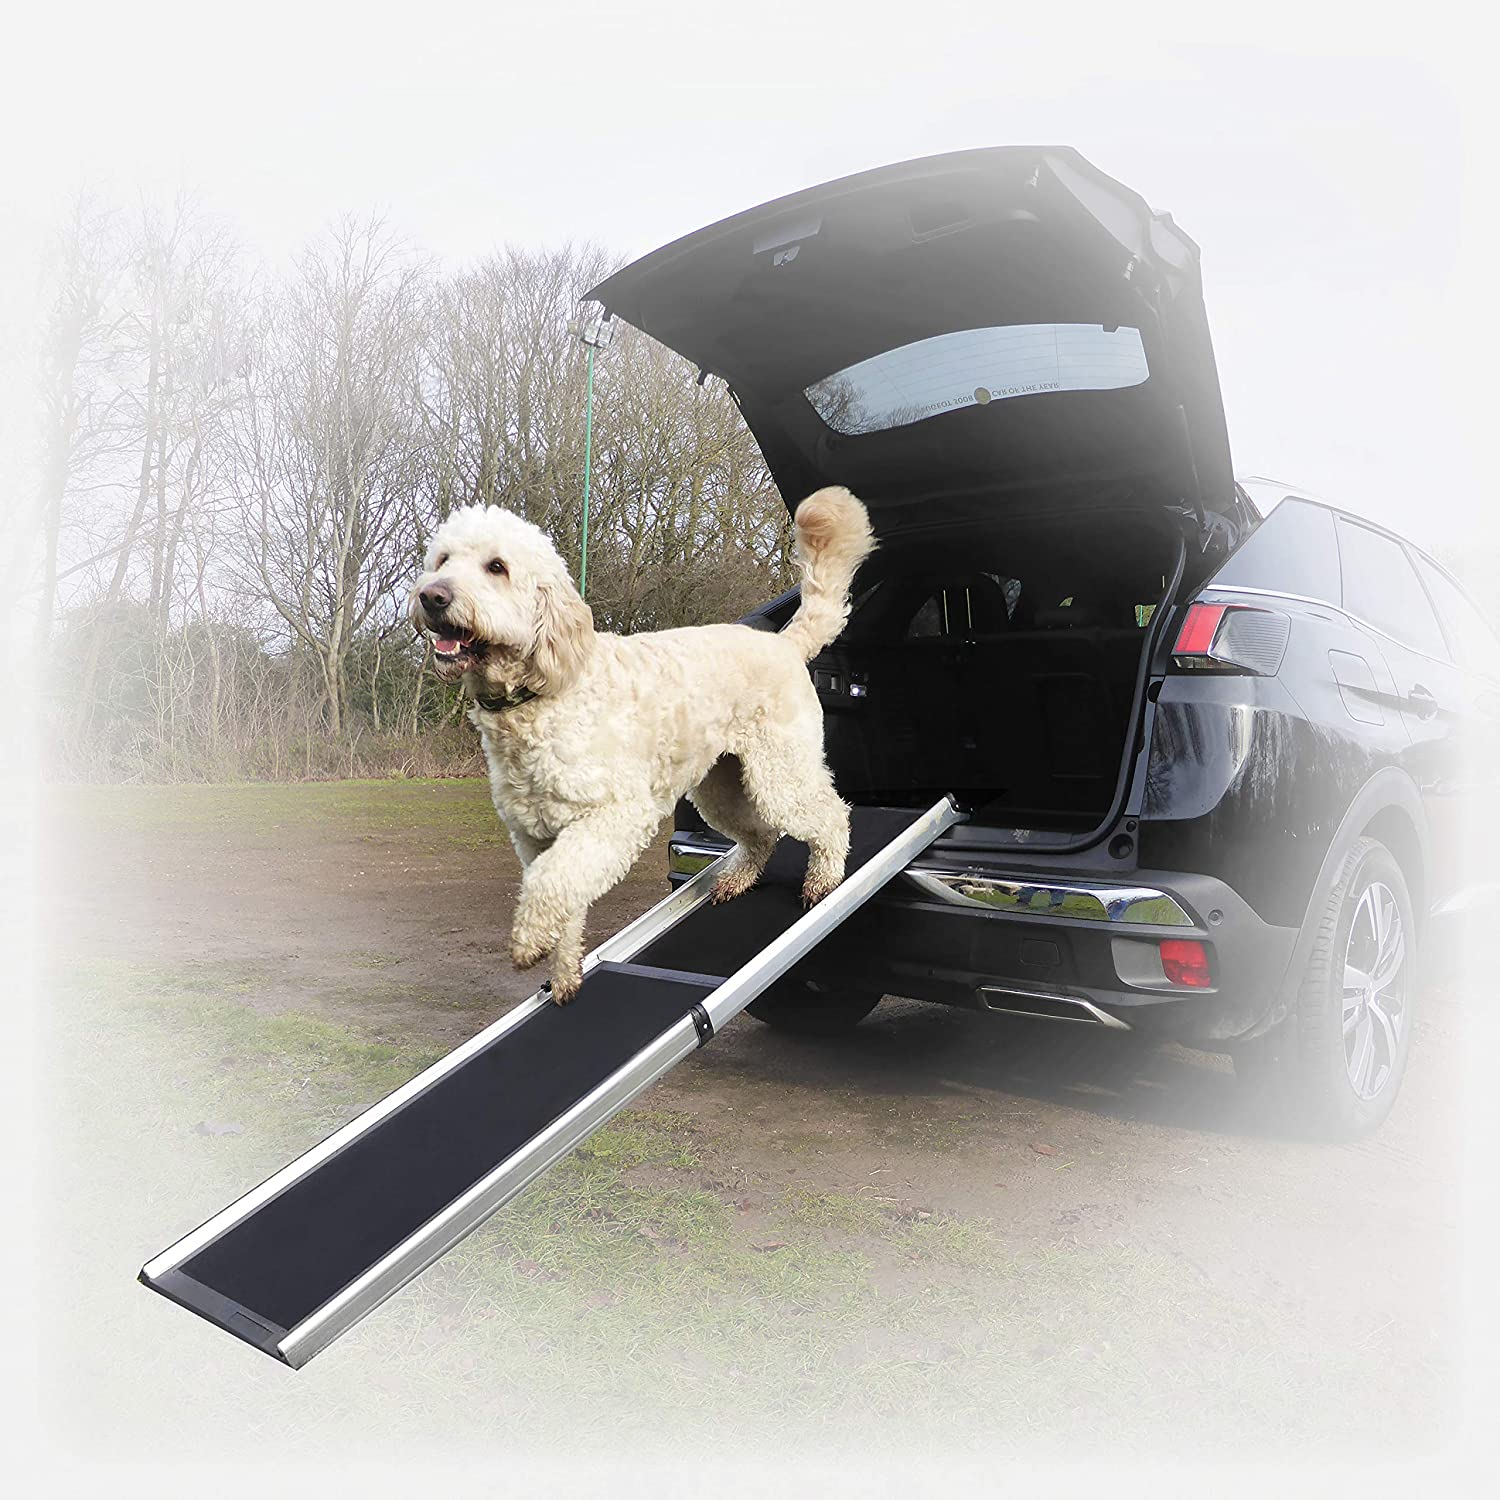 Hewitt & bluee Large Dog Car Ramp – Car 4x4 SUV MPV Ramp for Dogs – Lightweight & Easy to Use Telescopic Pet Ramp – Heavy Duty – Safe with SureGrip Technology